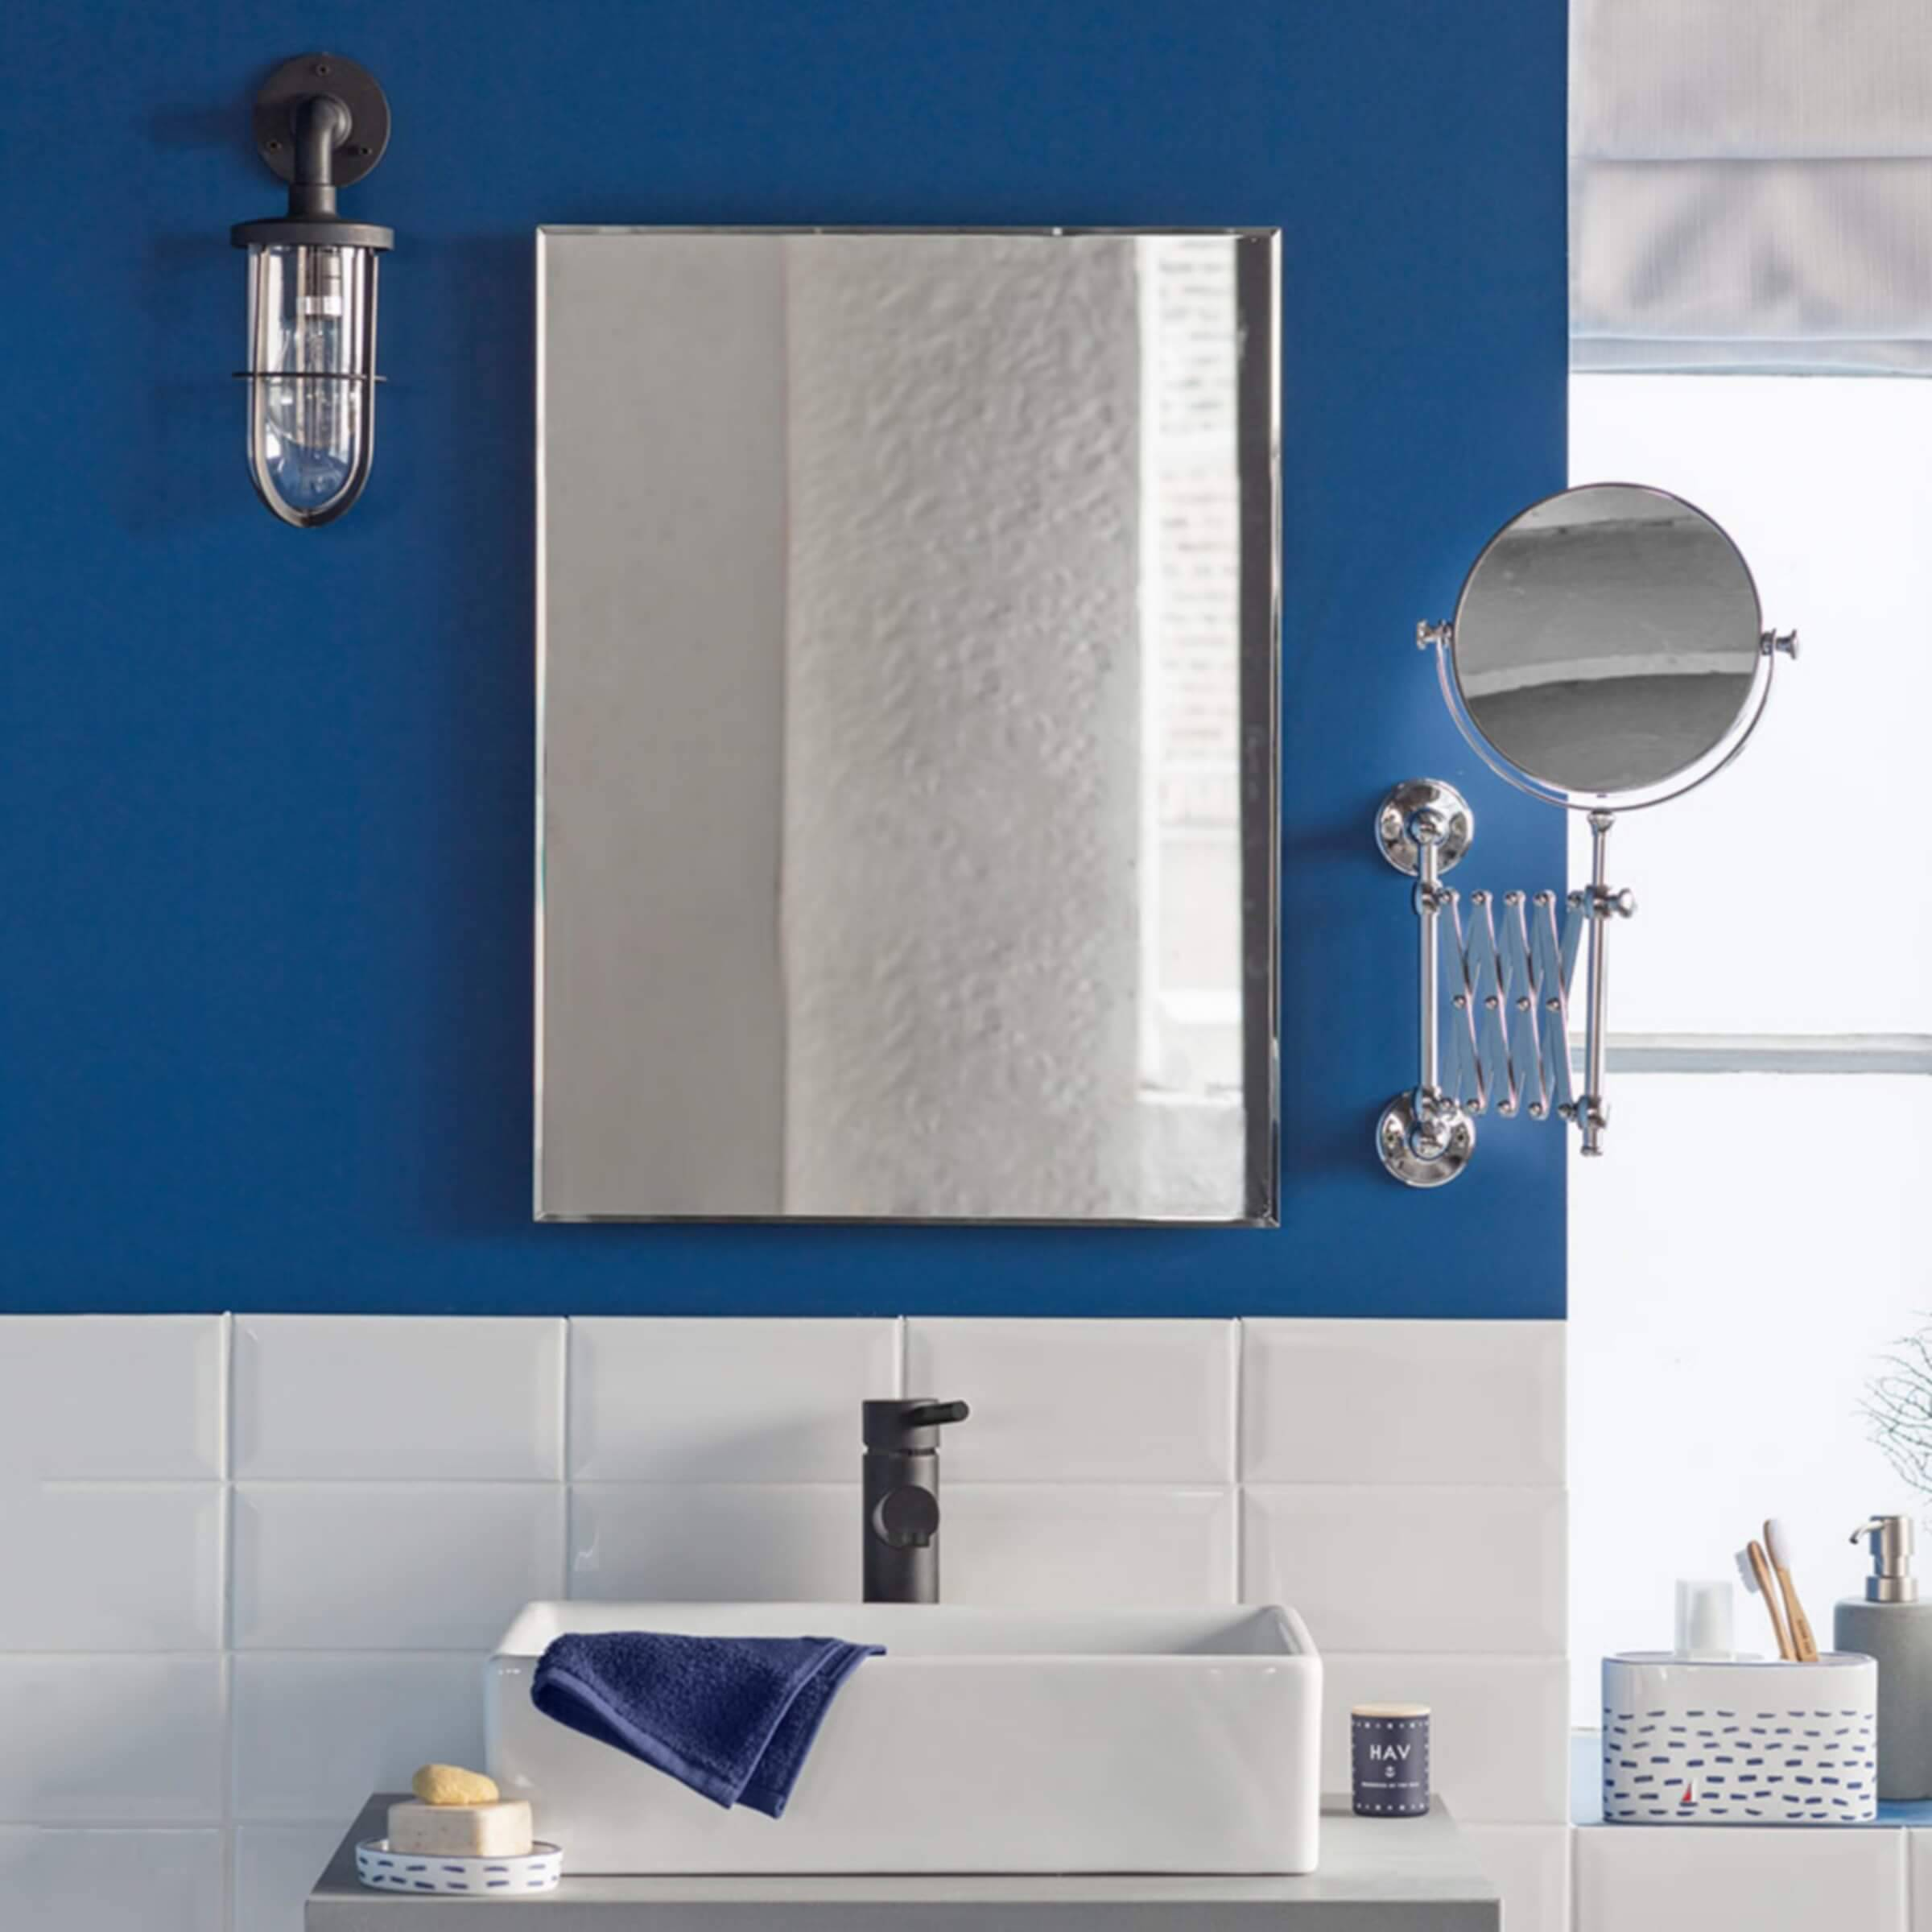 Bathroom Accessories | Bin, Tumbler, Toothbrush Holder, Soap Dish